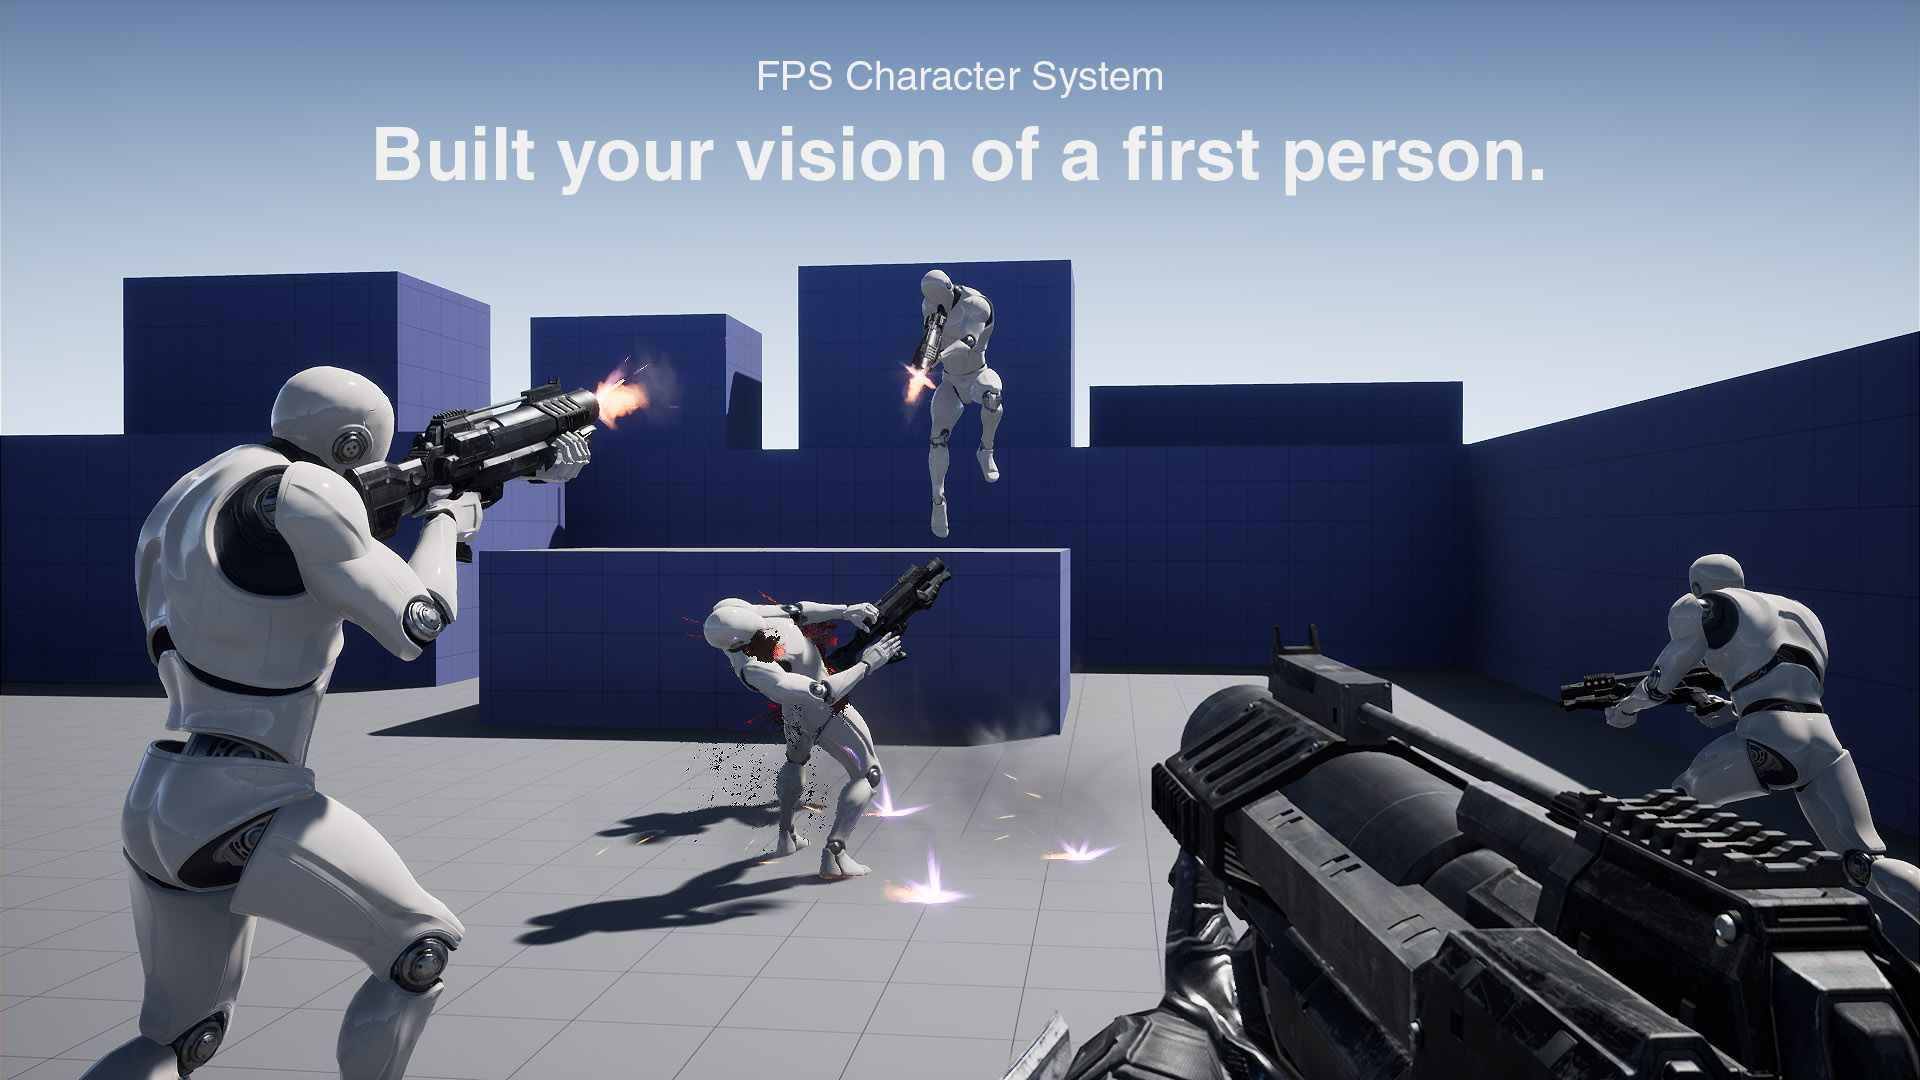 FPS Character System by Game Parts in Blueprints - UE4